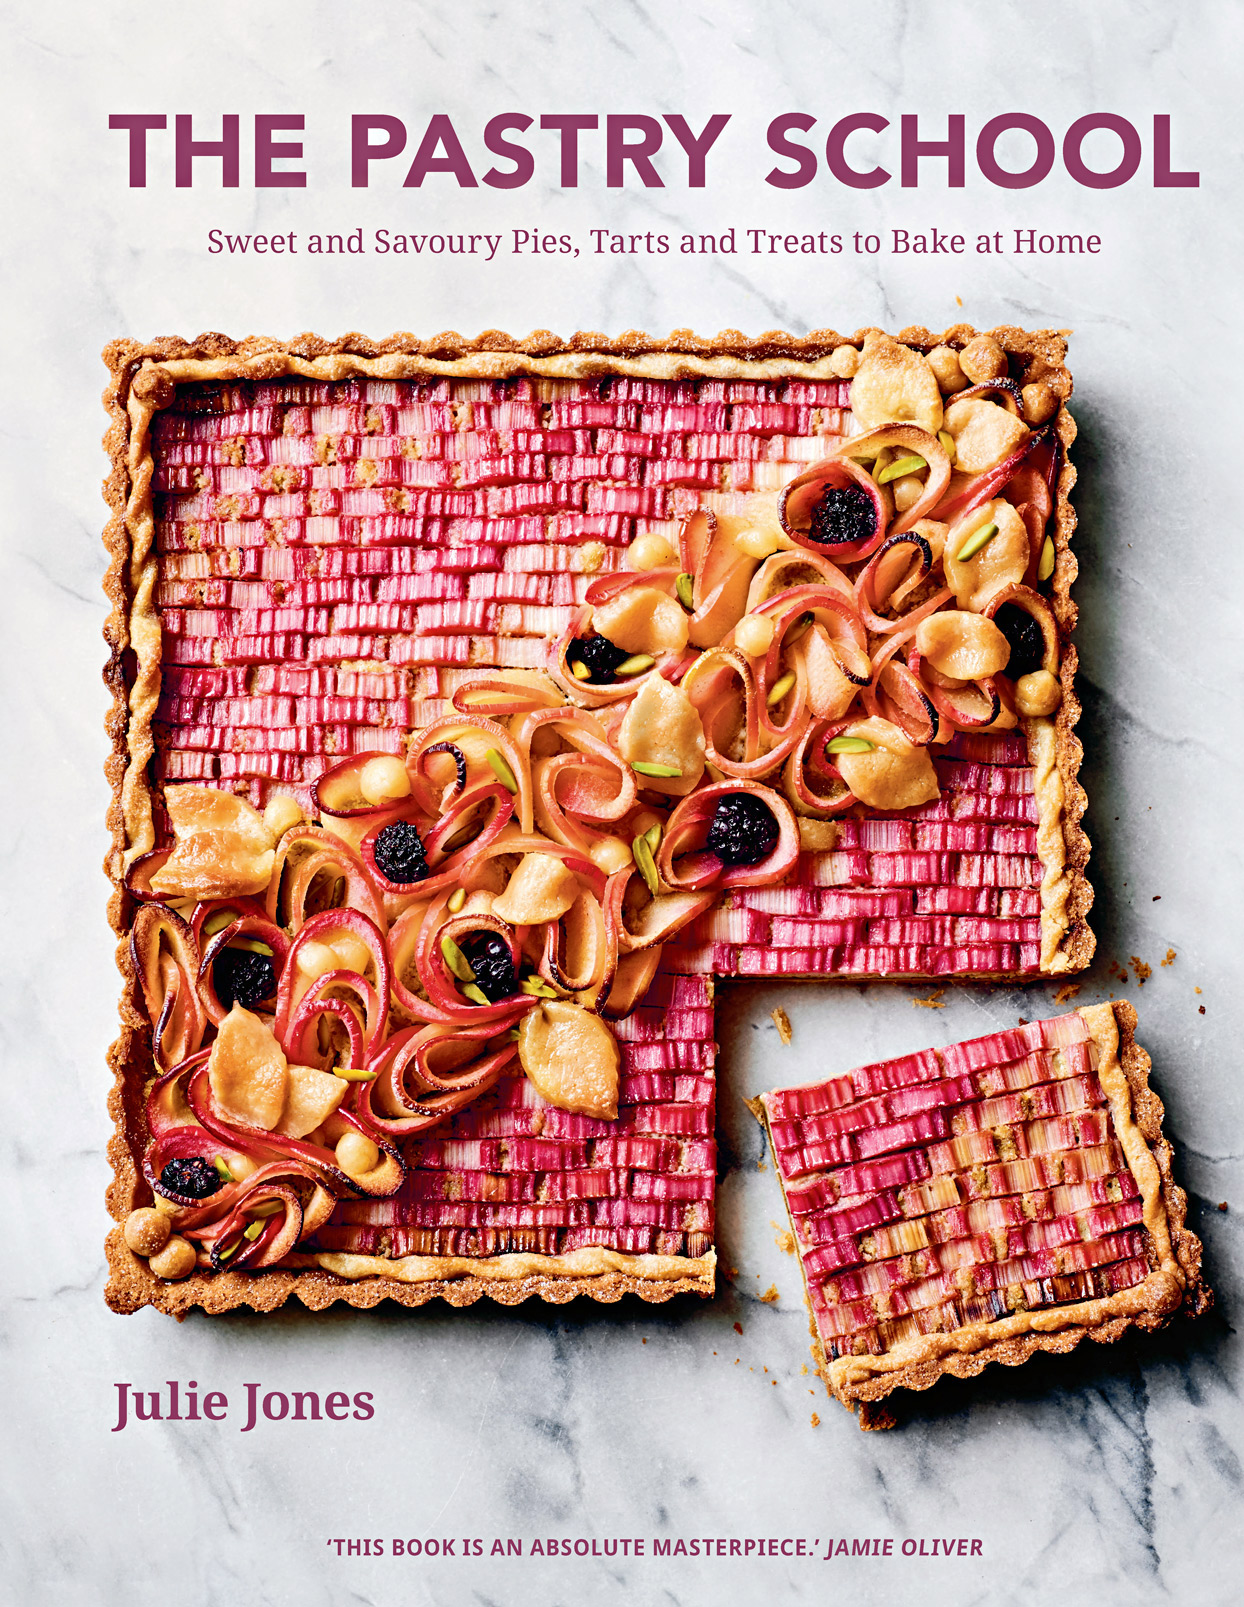 the pastry school by julie jones book cover